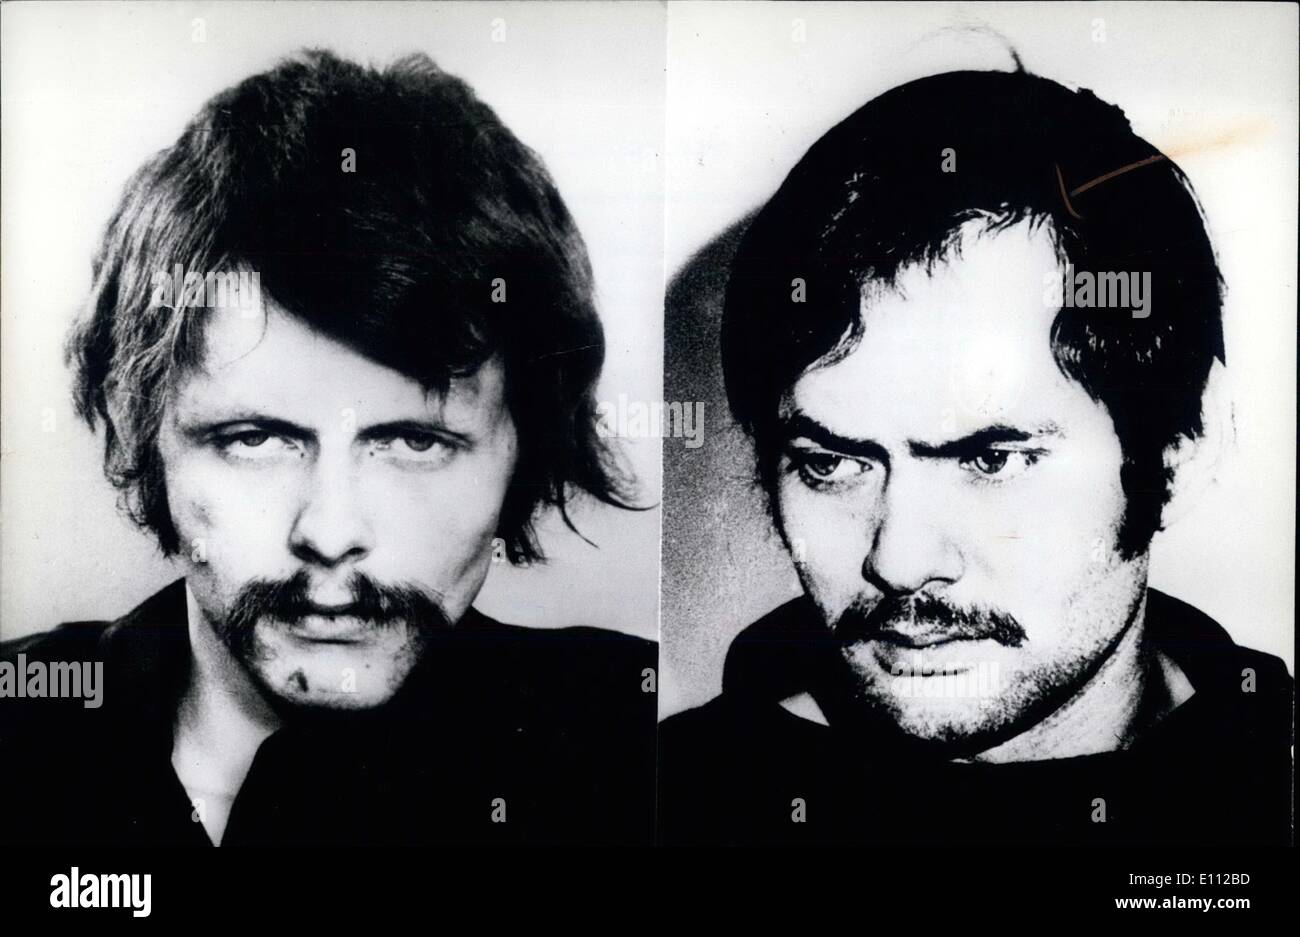 May 05, 1975 - May 21st: Start of trial against leading members of Baader/Meinhof group in Stuttgart: On May 21st 1975, the proceedings against four leading members of the Baader/Mainhof group will start in Stuttgart. About 500 witnesses and expert witnesses will be heard during this trial which will take between 6 and 18 months - Stock Image